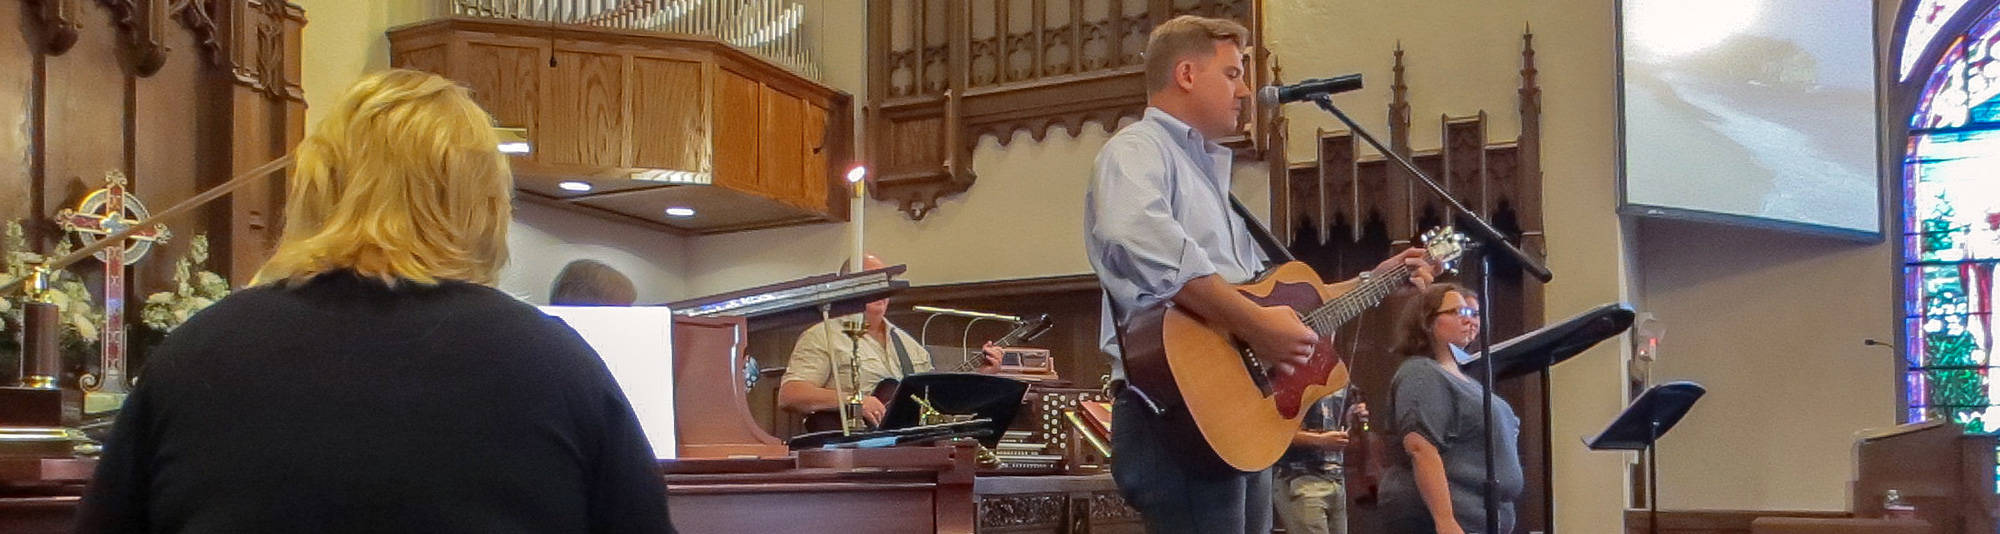 man playing guitar at church